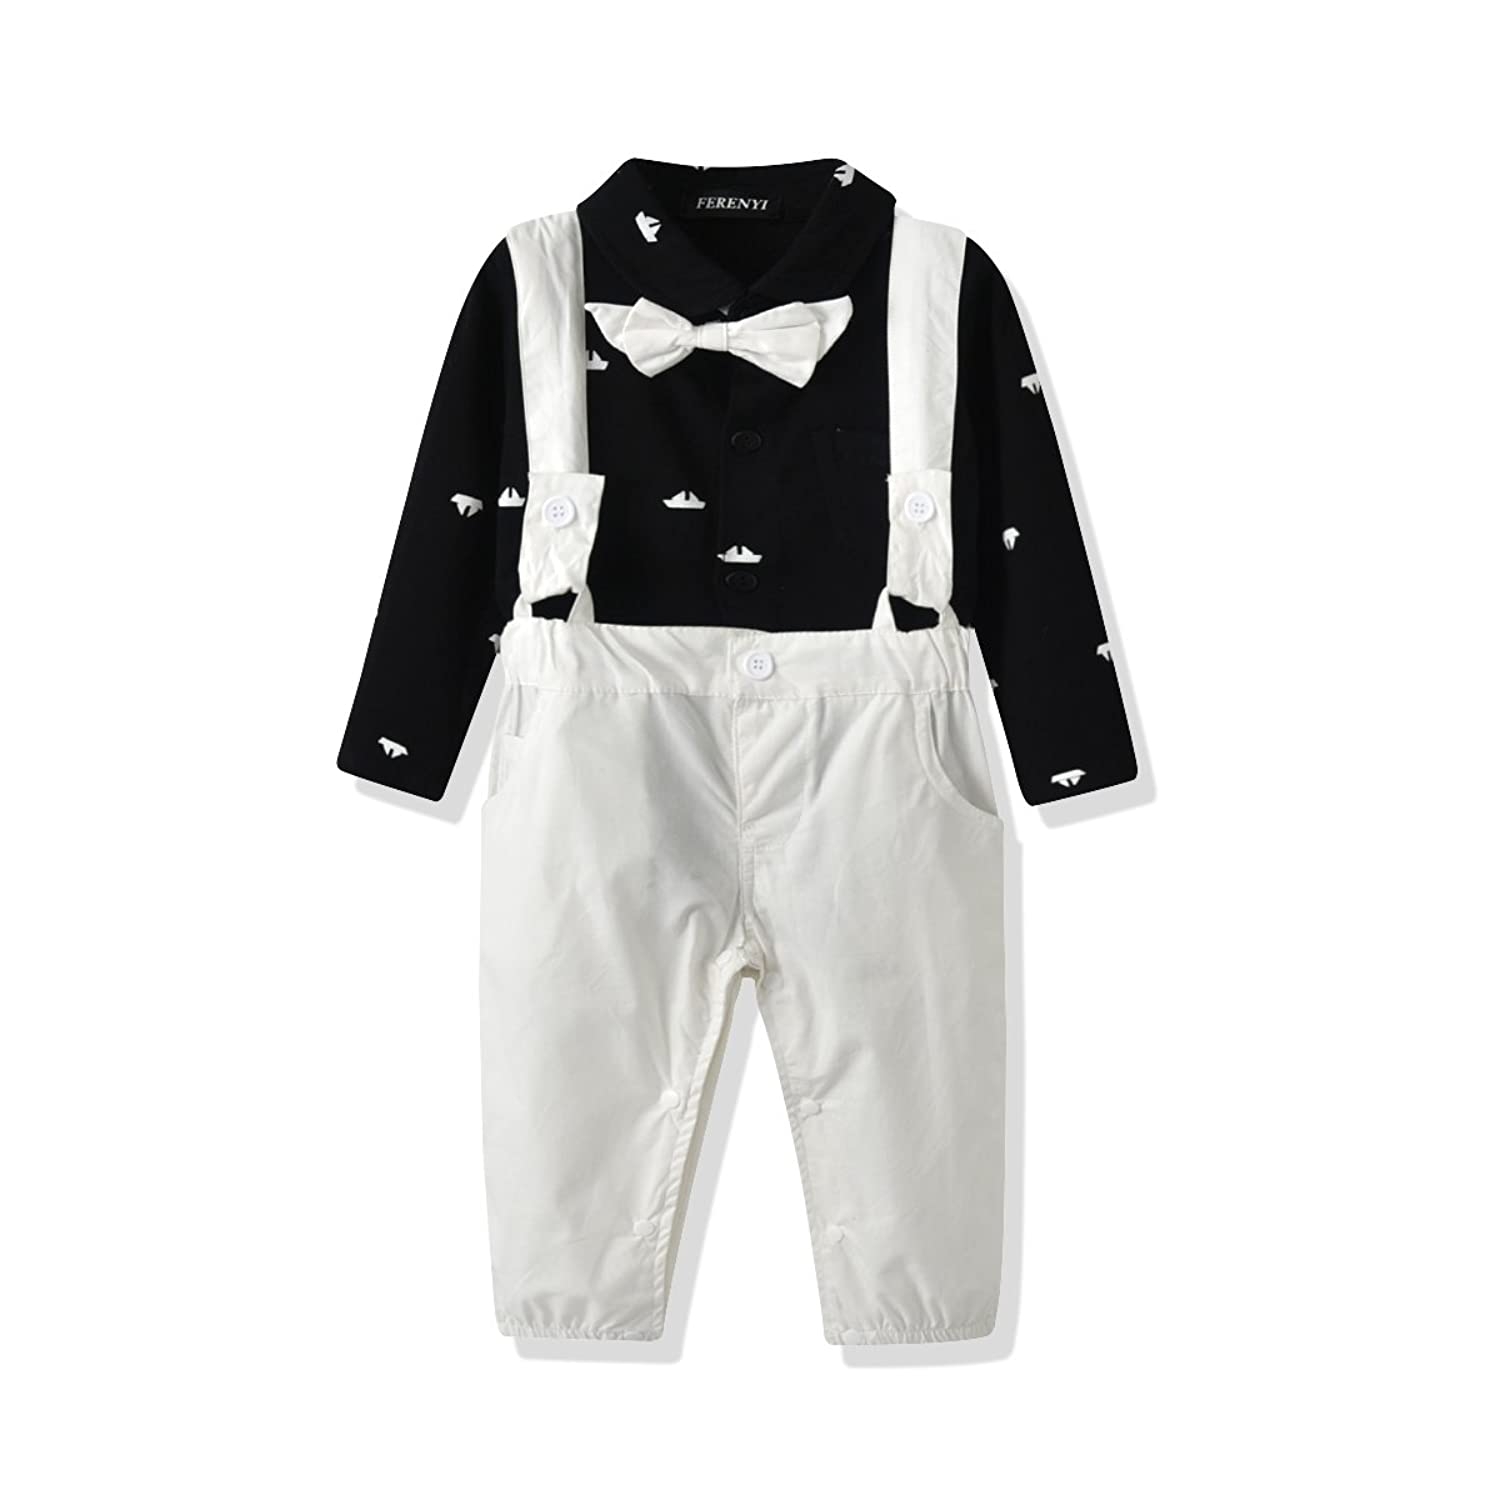 f8790f1e9 Online Cheap wholesale FERENYI US Baby Boys Bowtie Gentleman Romper  Jumpsuit Overalls Rompers Rompers Suppliers